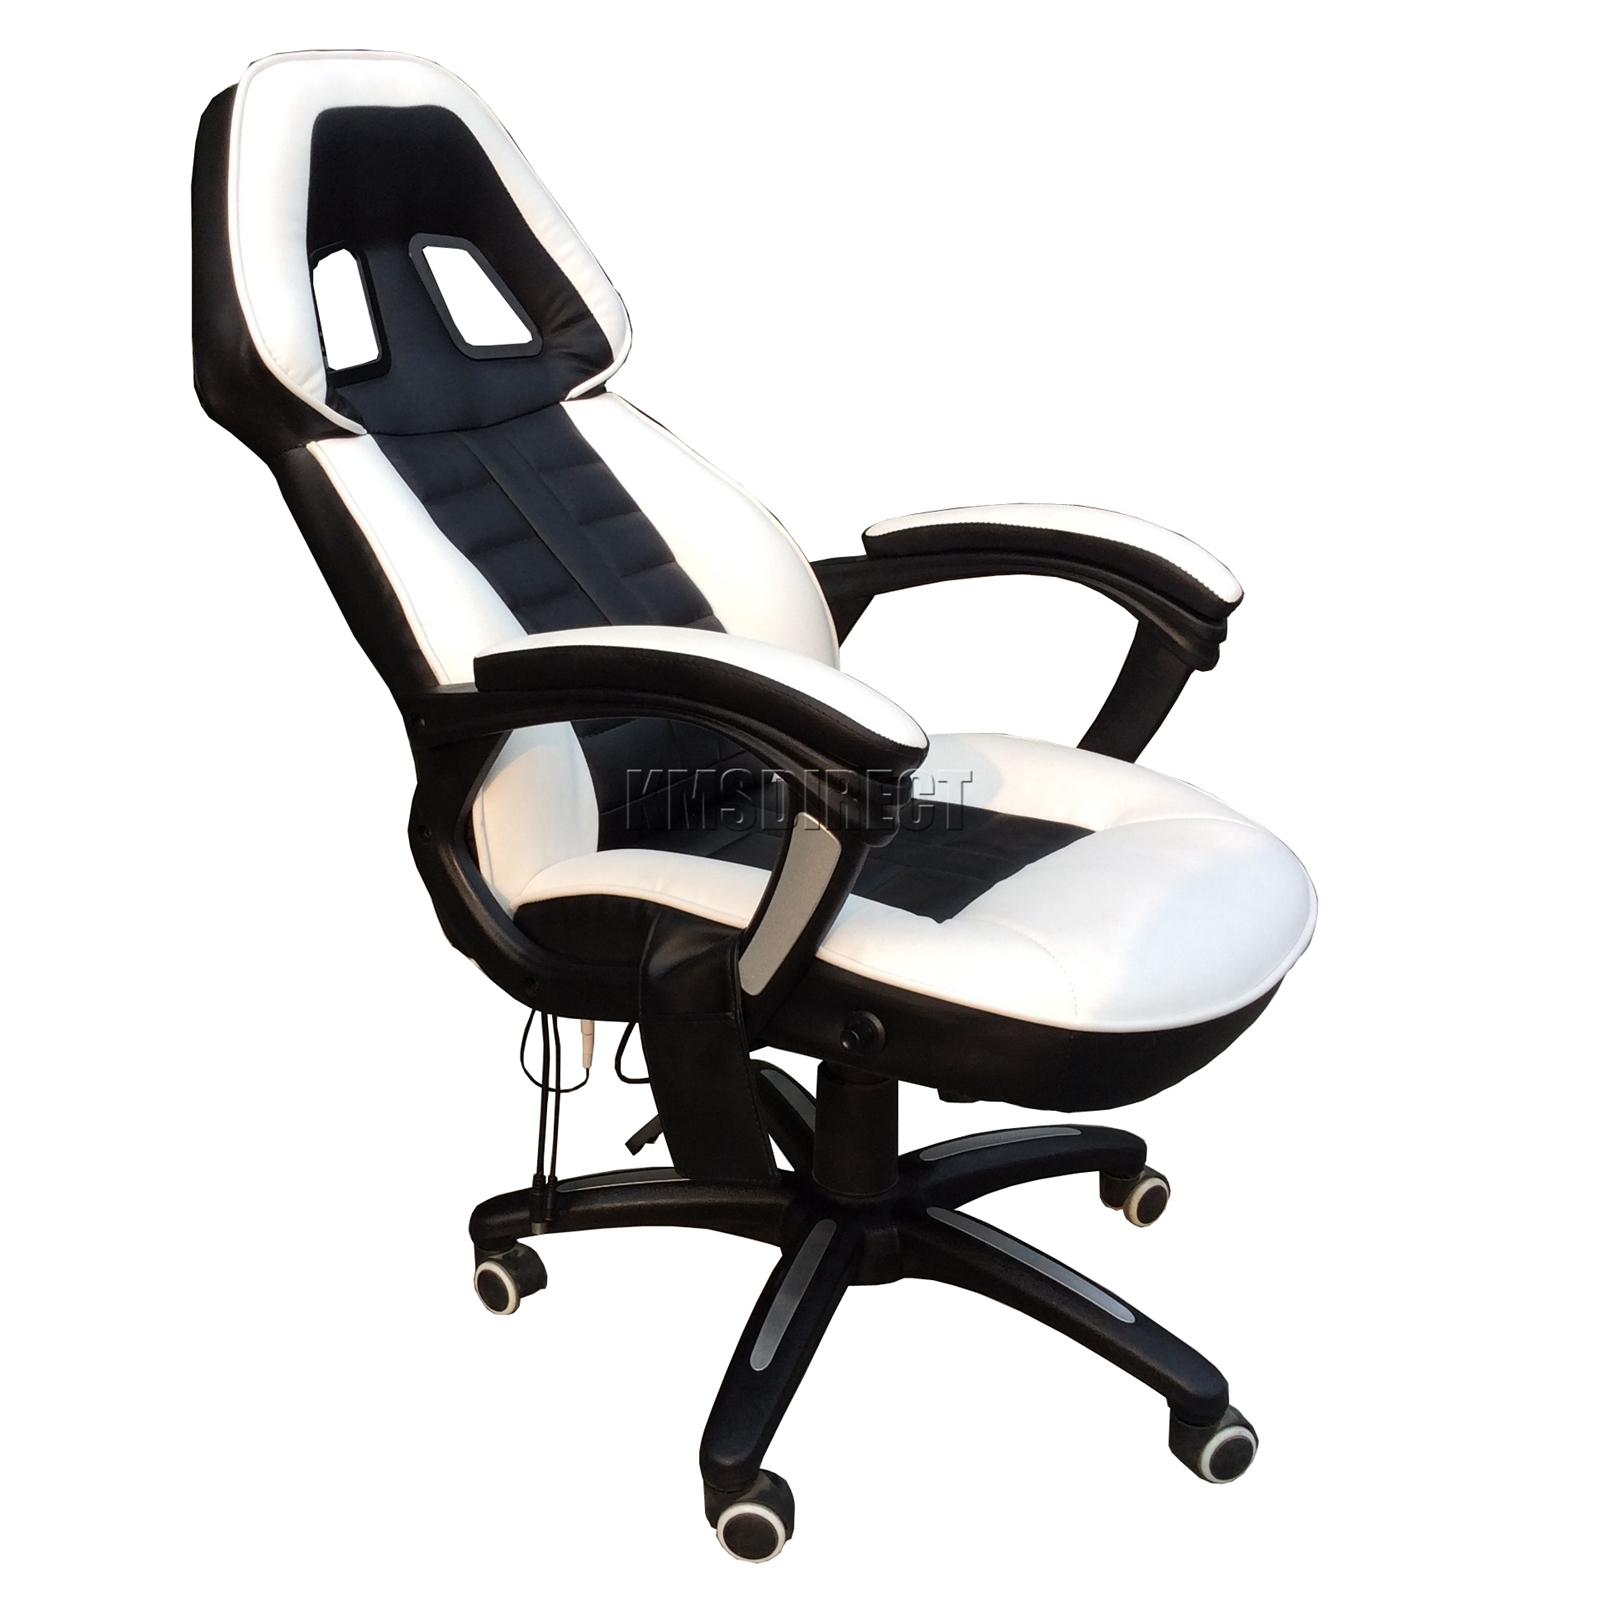 FoxHunter Luxury 6 Point Massage fice puter Chair High Back Black White New